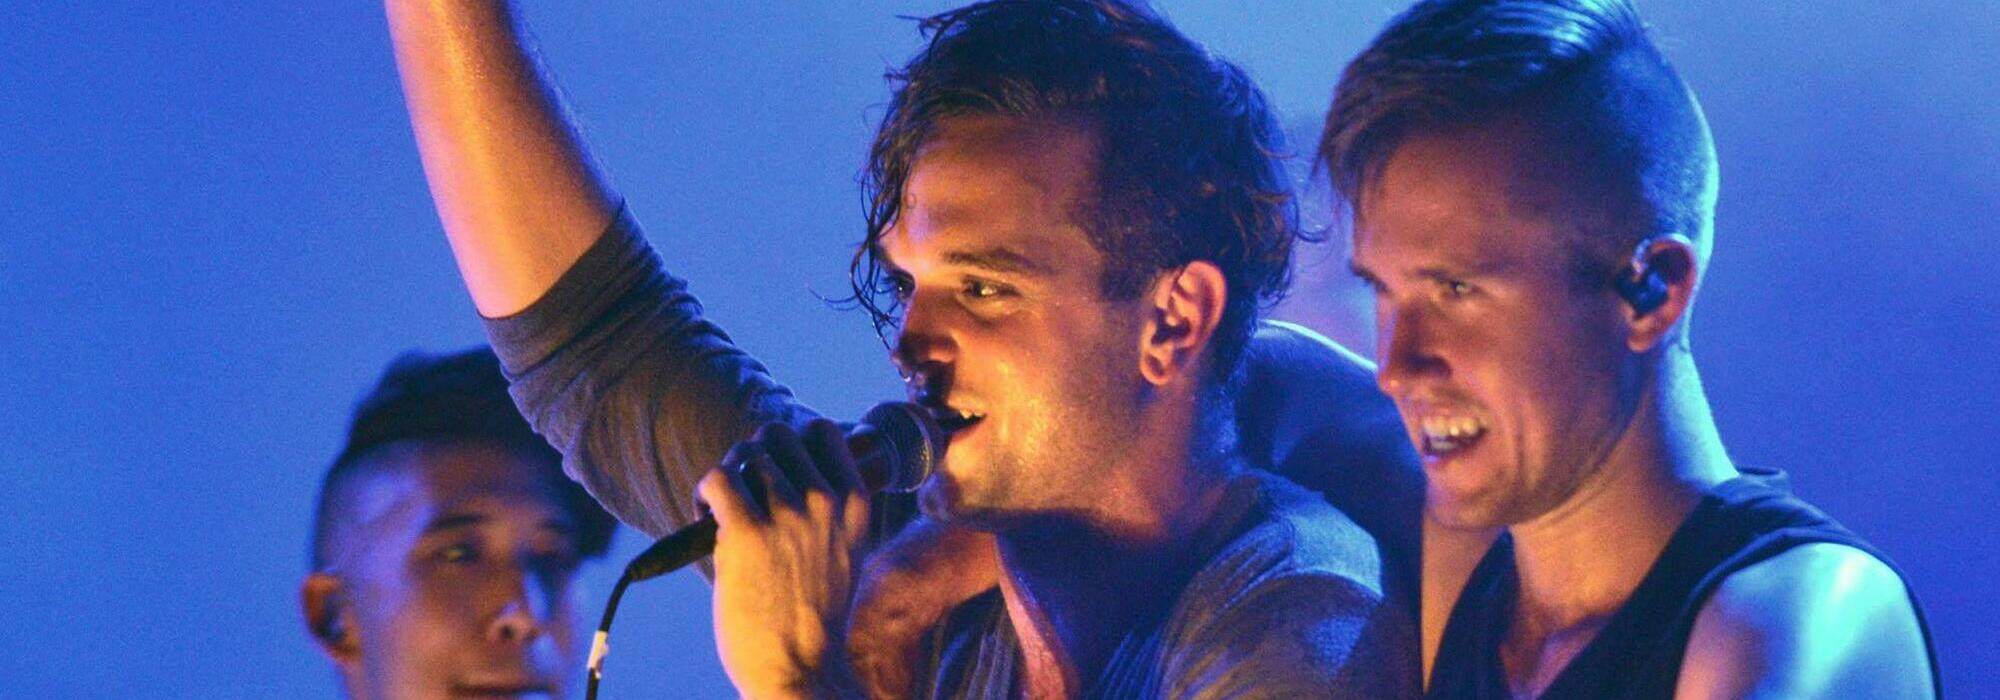 A Sir Sly live event